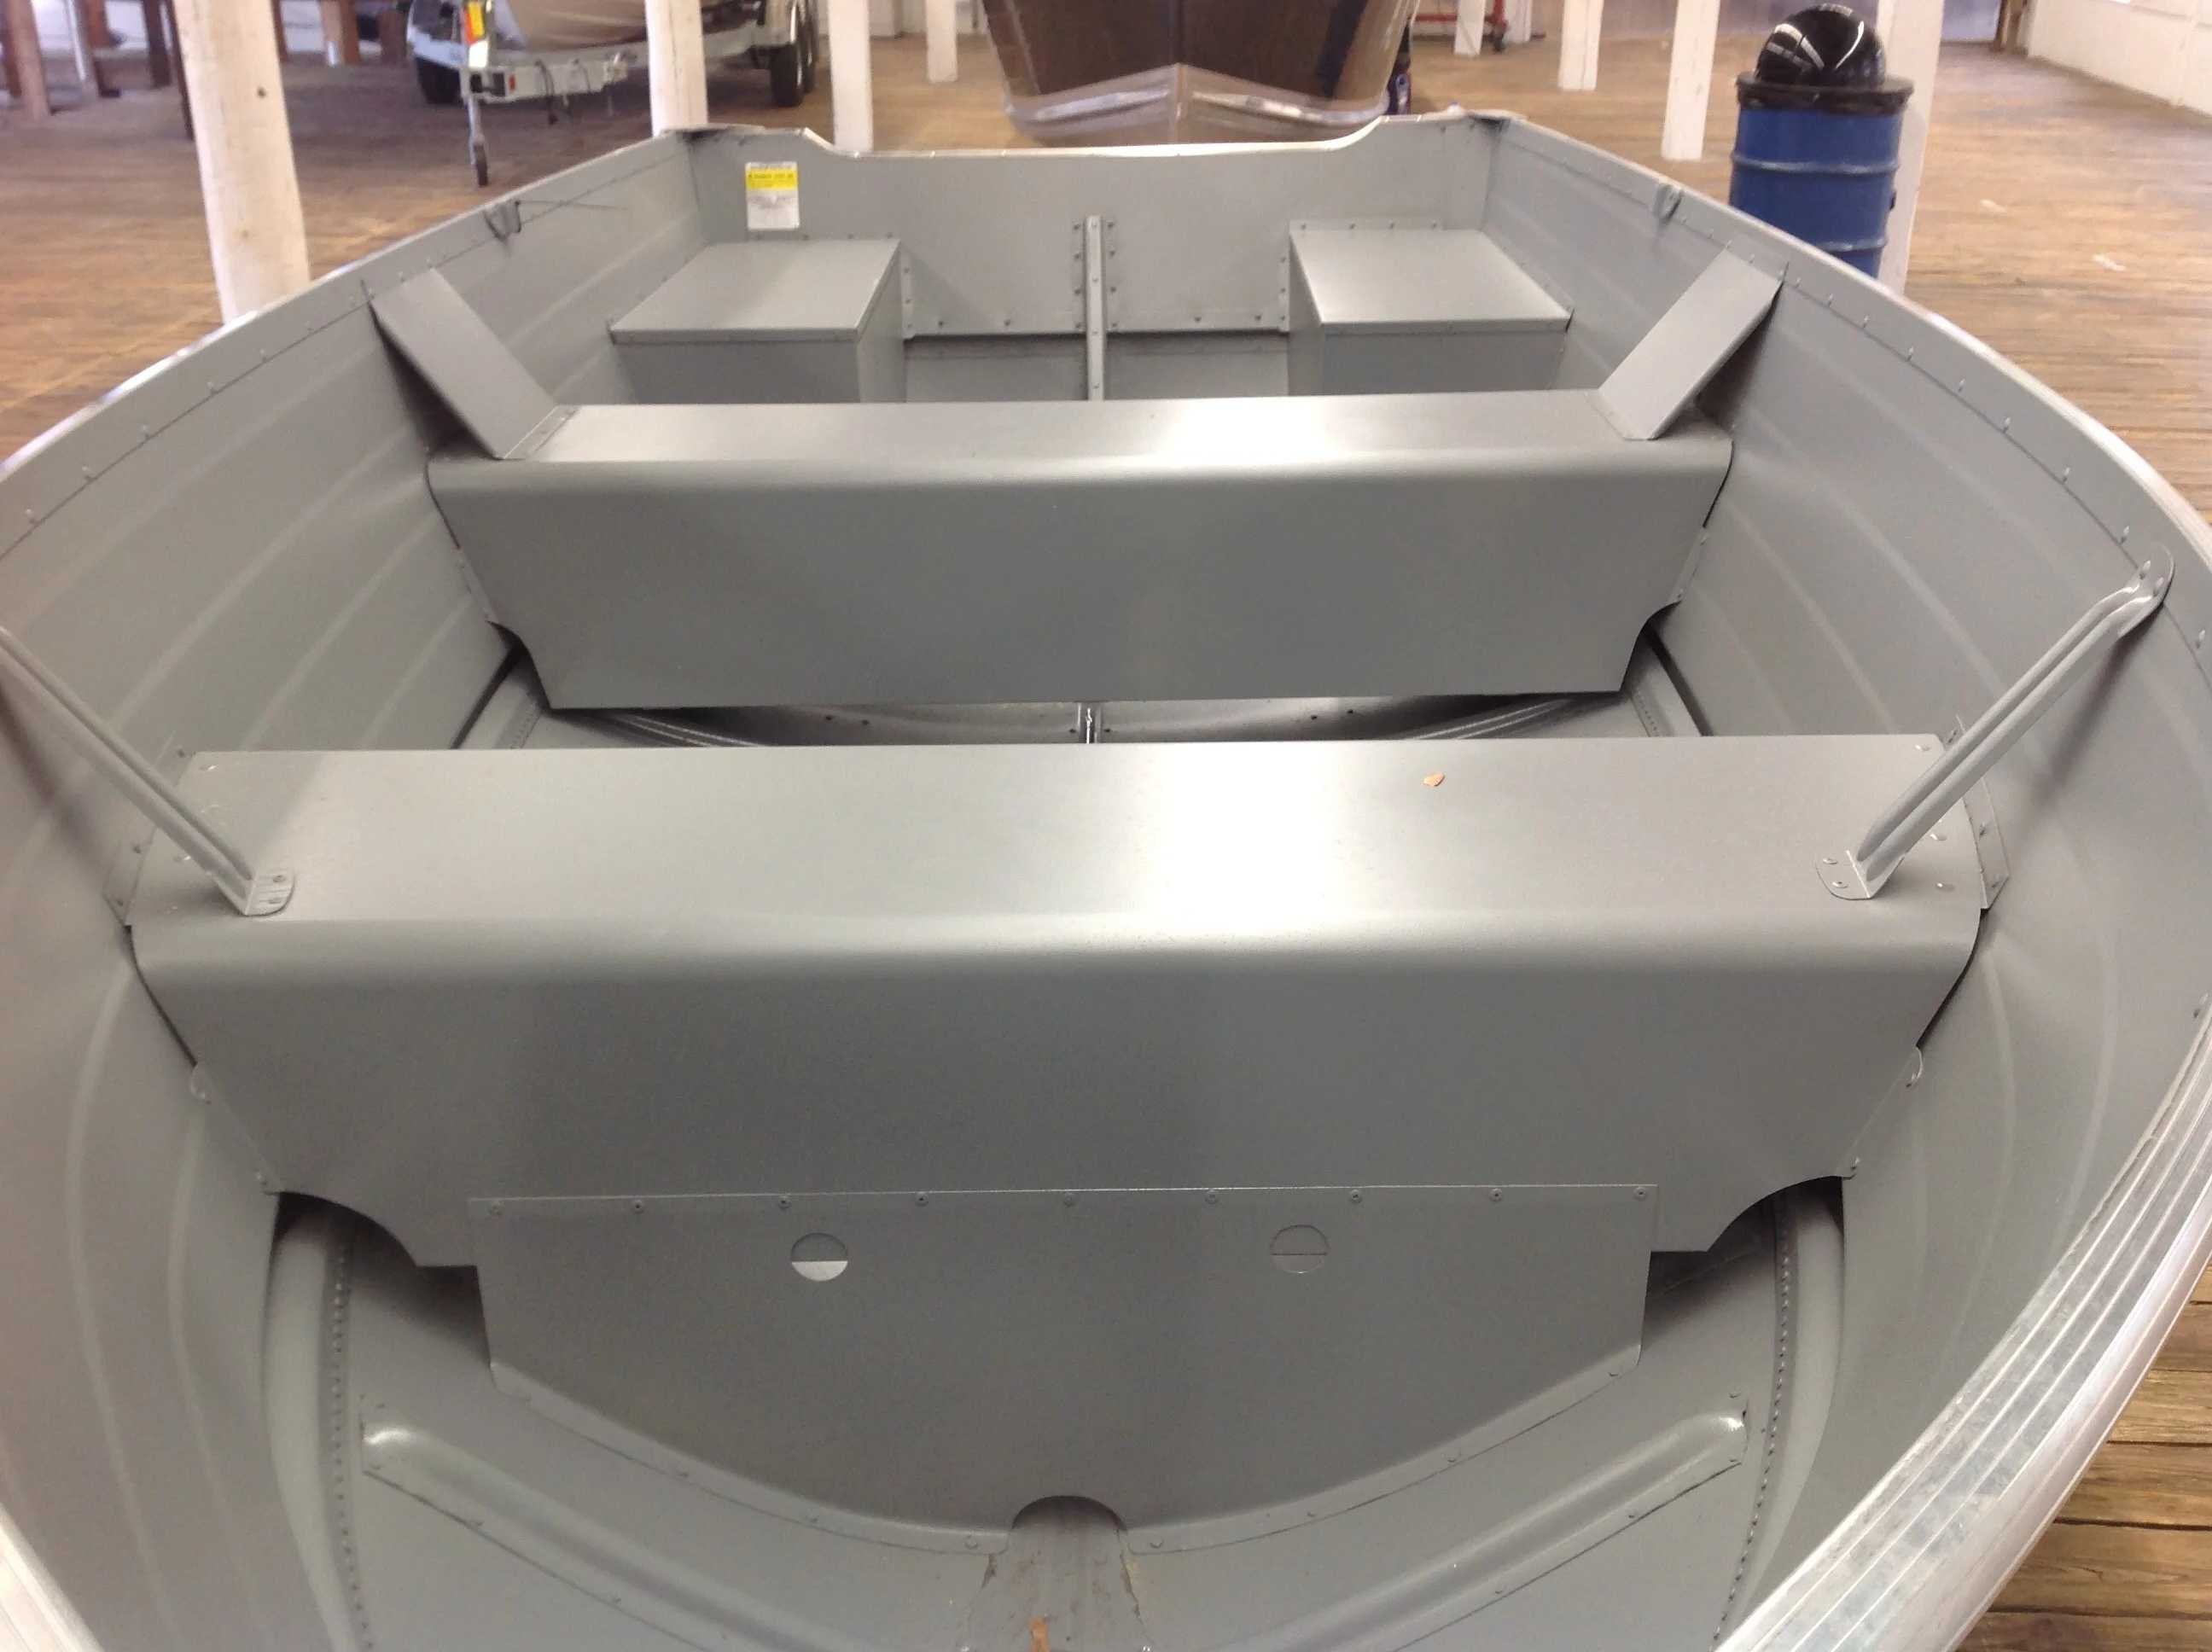 2021 Smoker Craft boat for sale, model of the boat is 14 Voyager Tl Ss & Image # 4 of 8